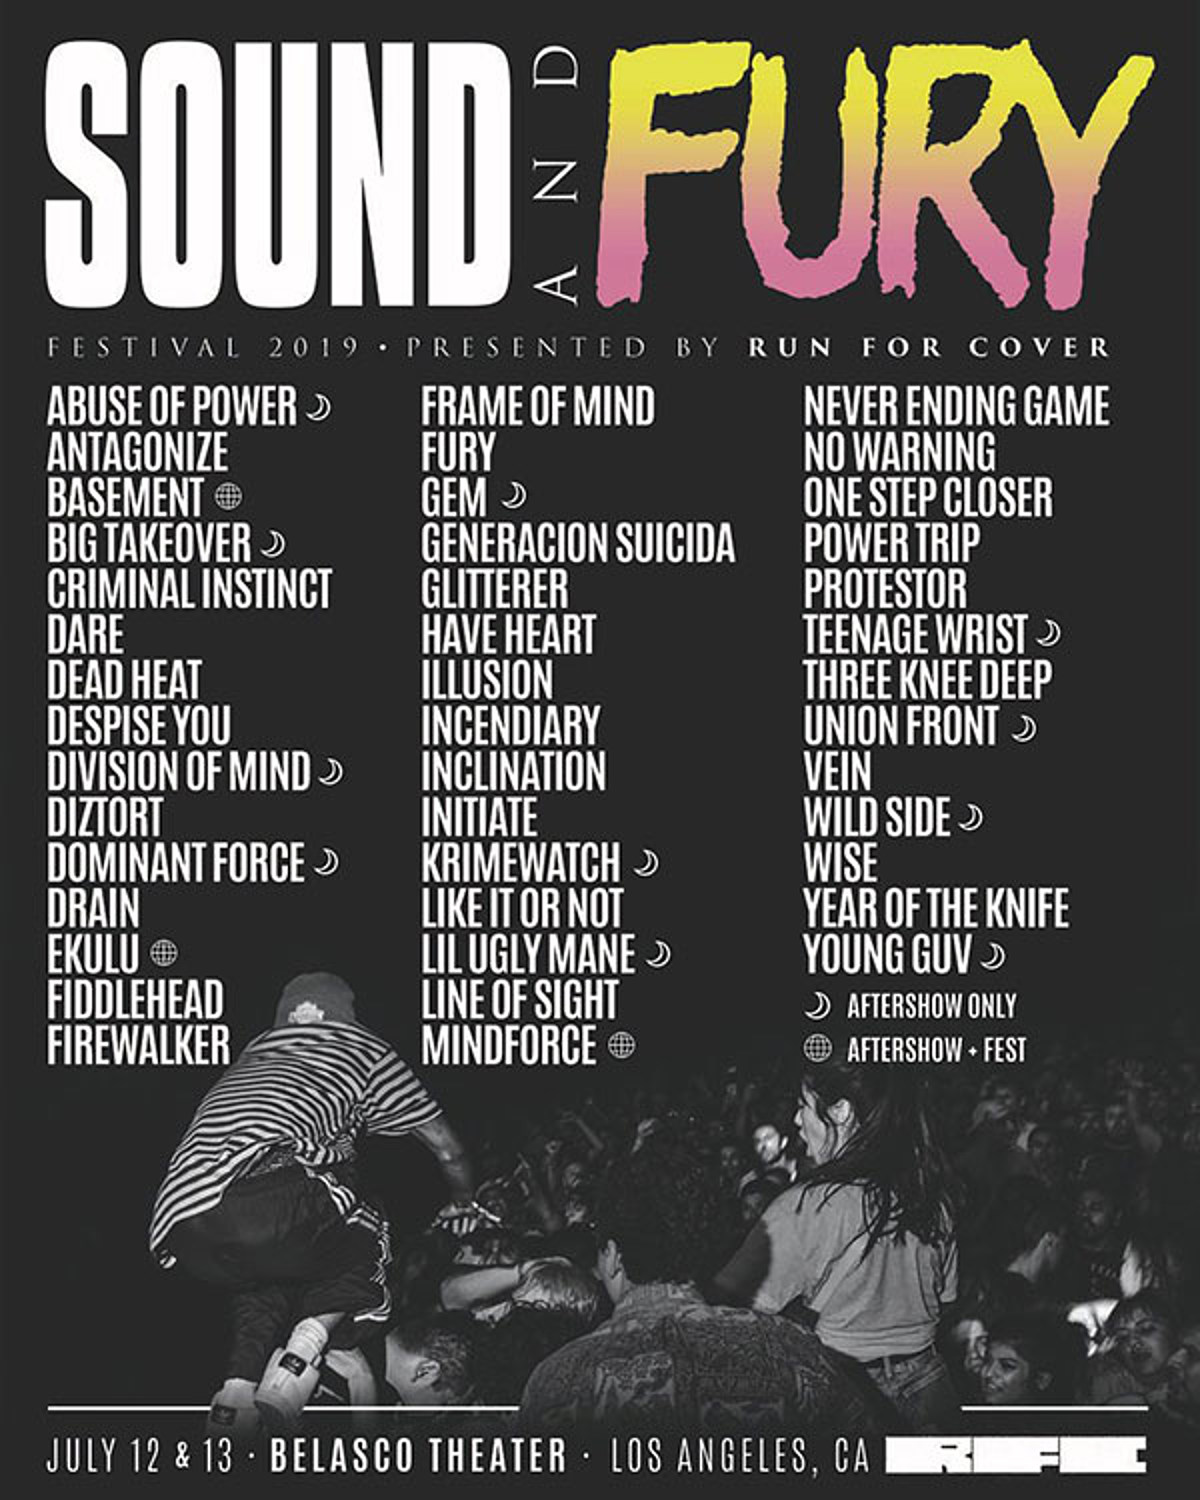 Sound Fury 2019 full lineup (Vein, No Warning, Year of the Knife, Glitterer, more)